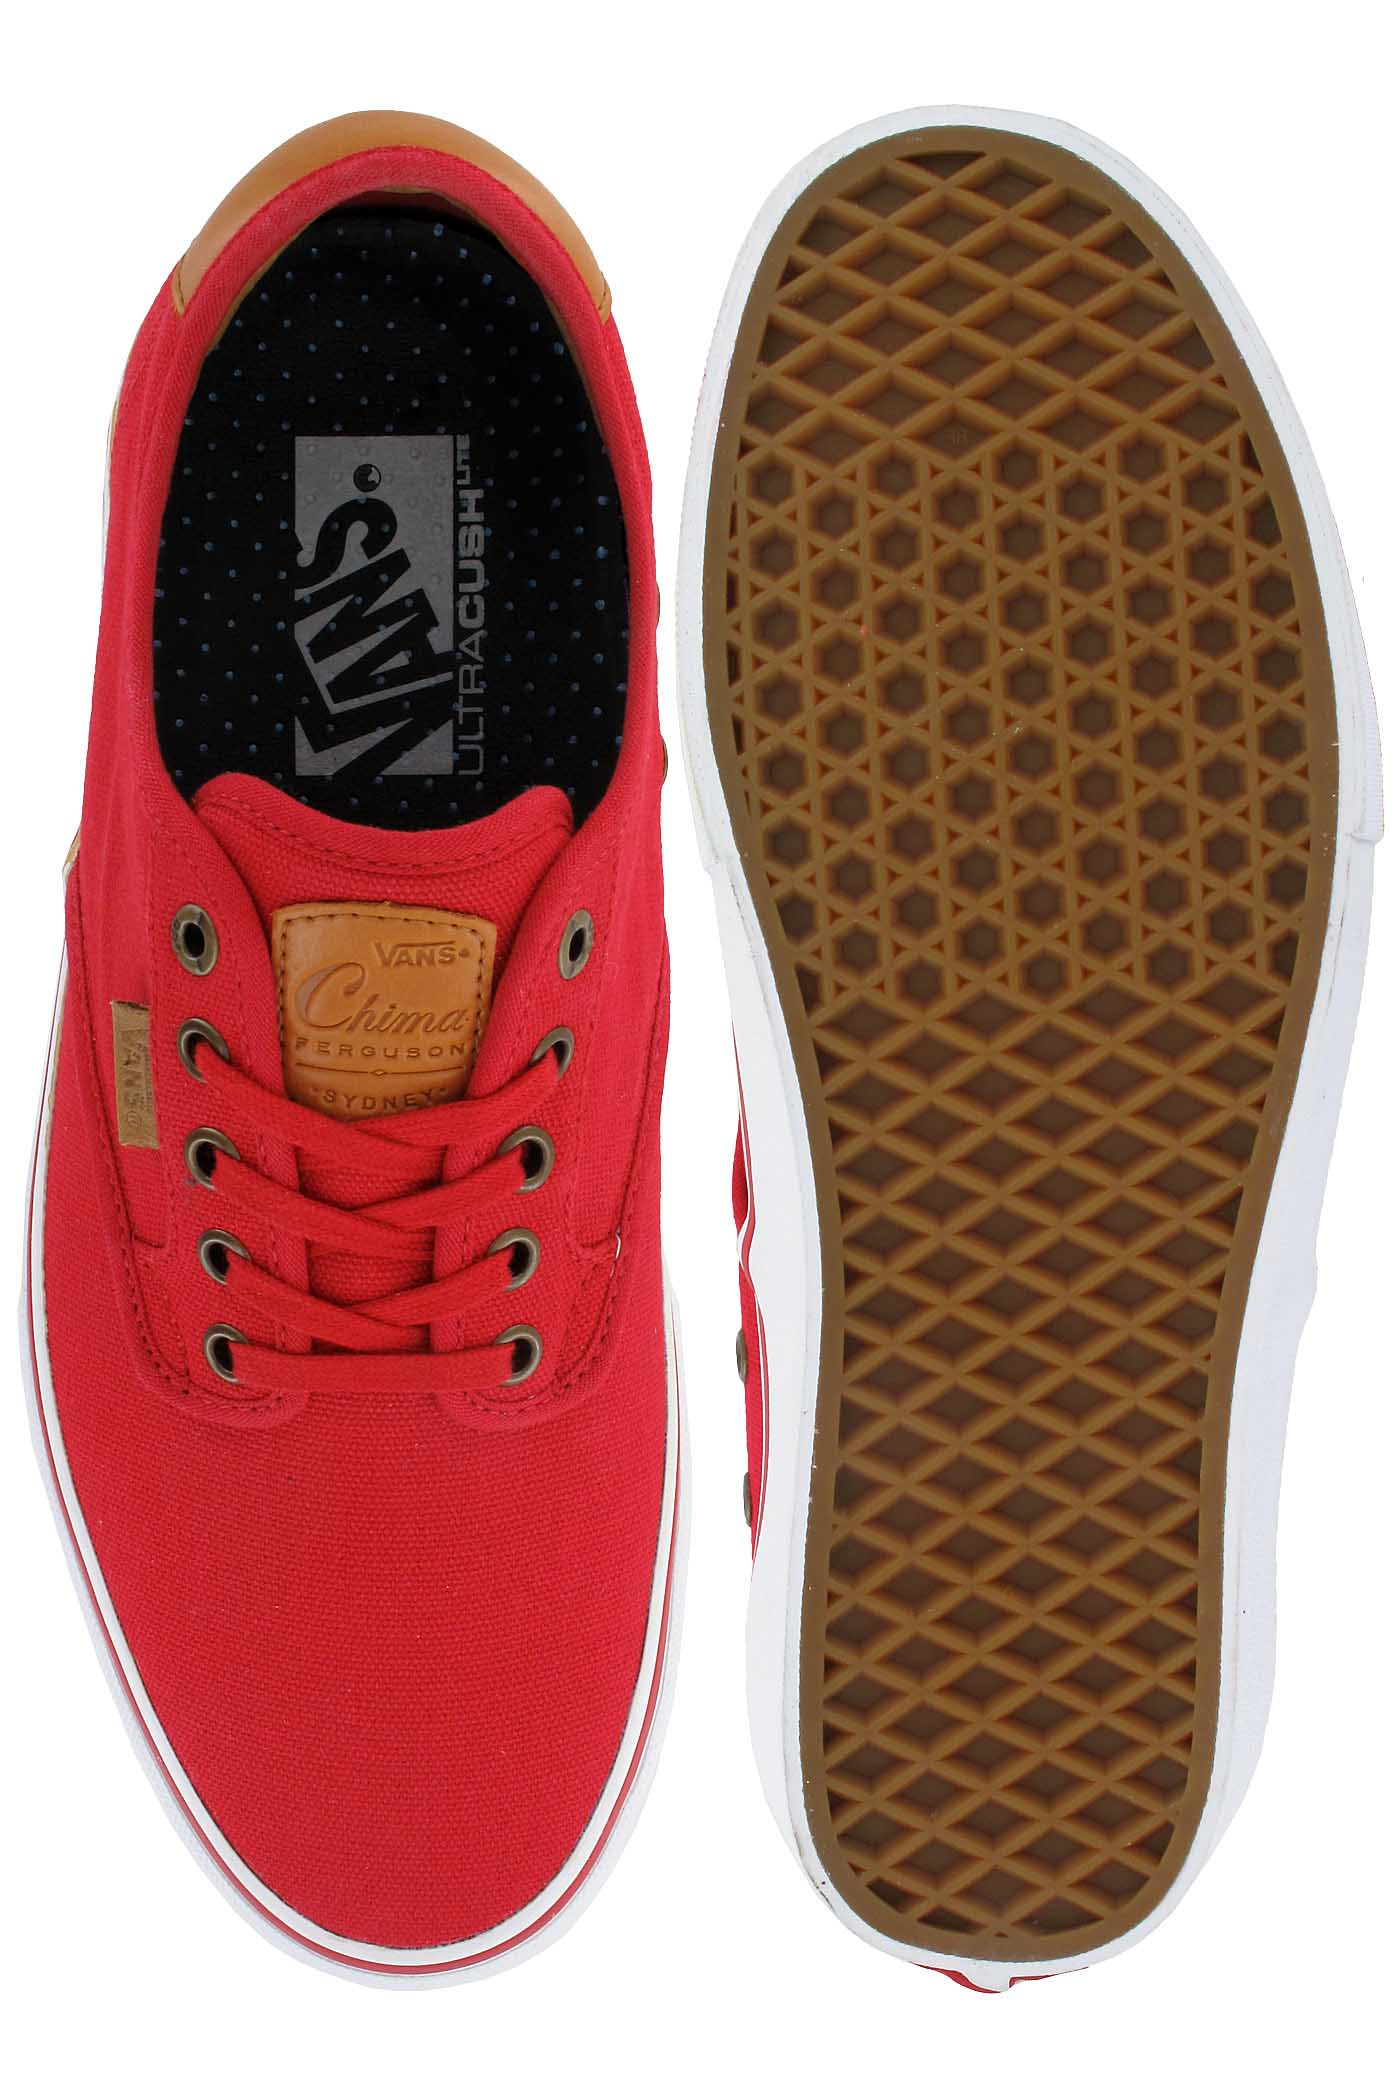 Tênis Vans Chima Ferguson Pro Red/ White/ Tan